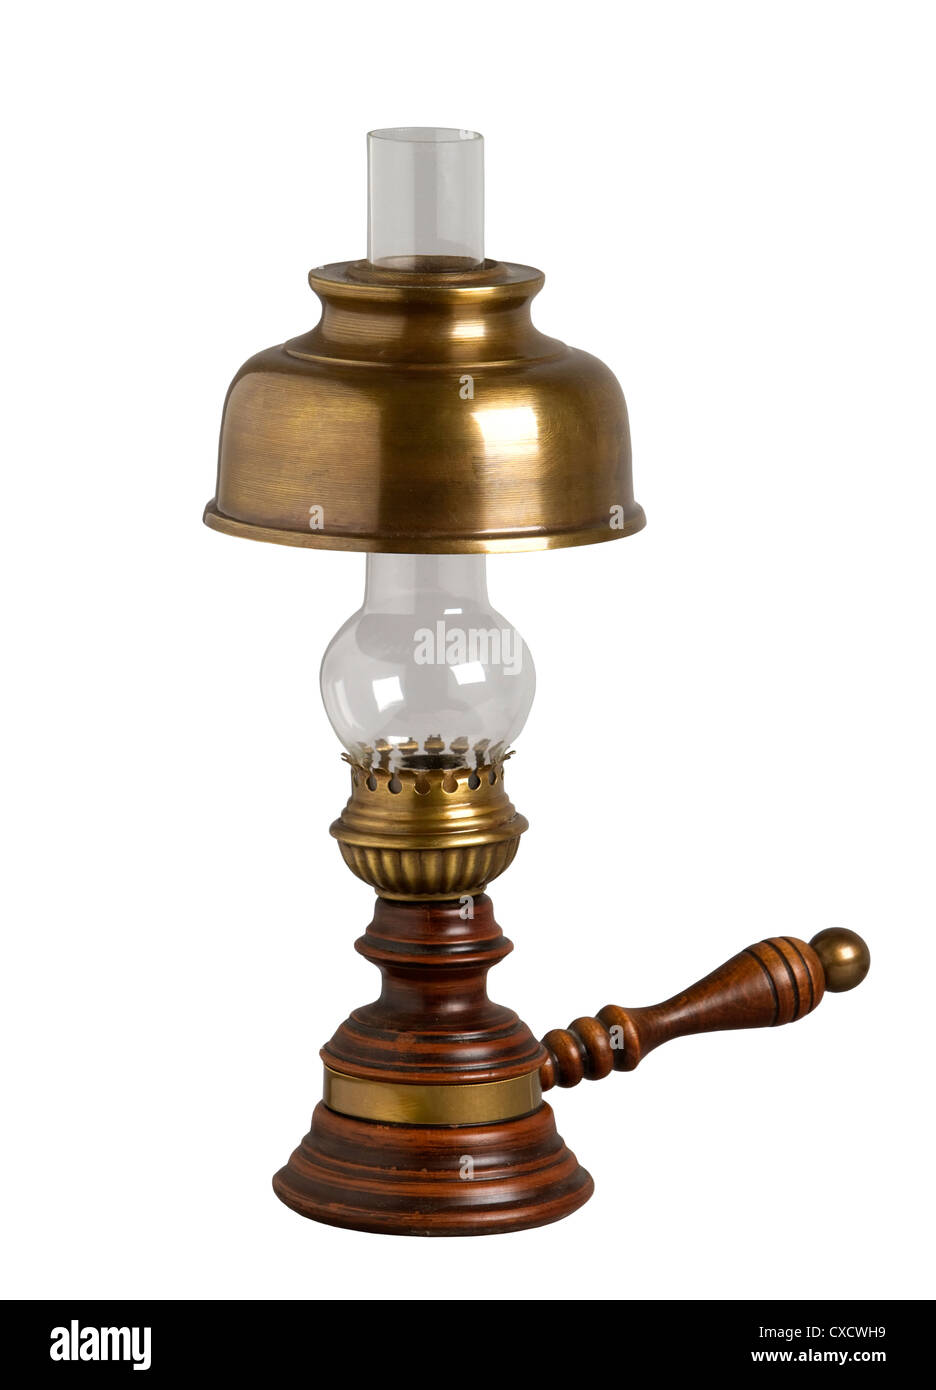 Antique oil lamp, isolated on white - Stock Image